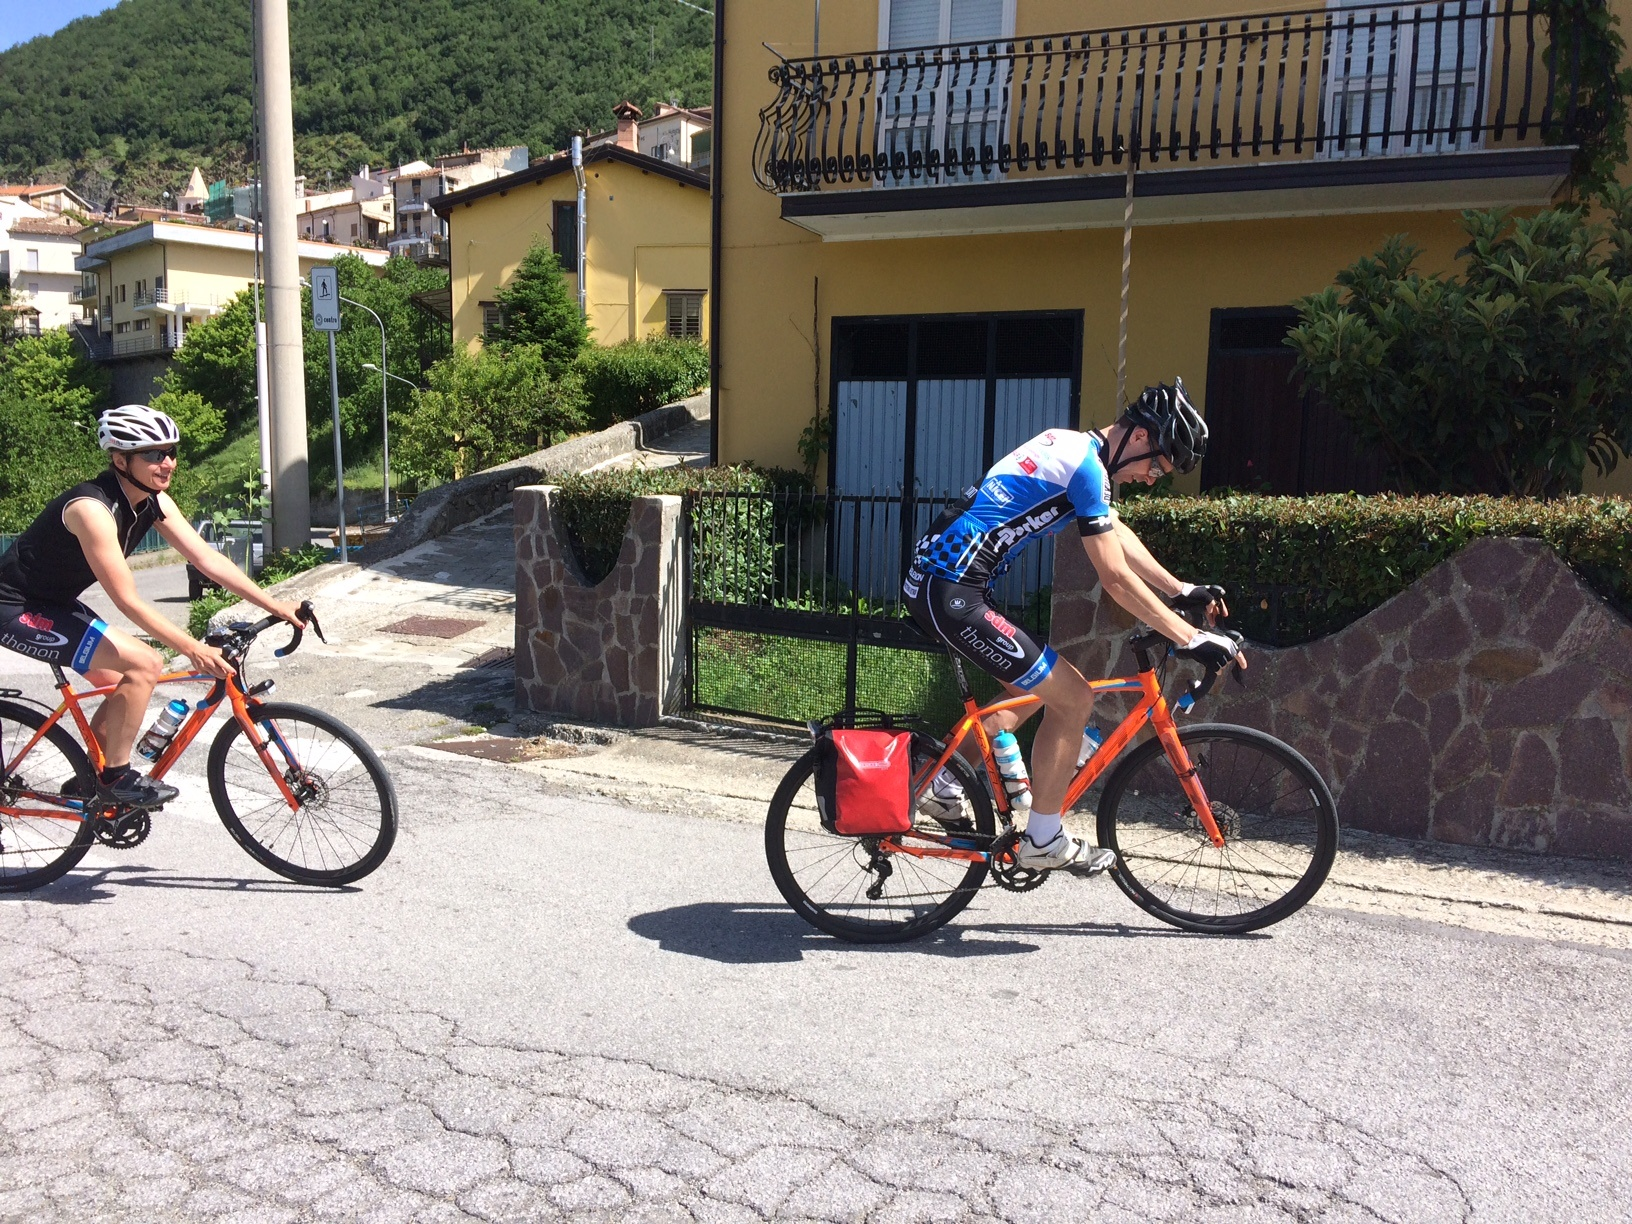 Jan cycling on a street of Terranova del Pollino